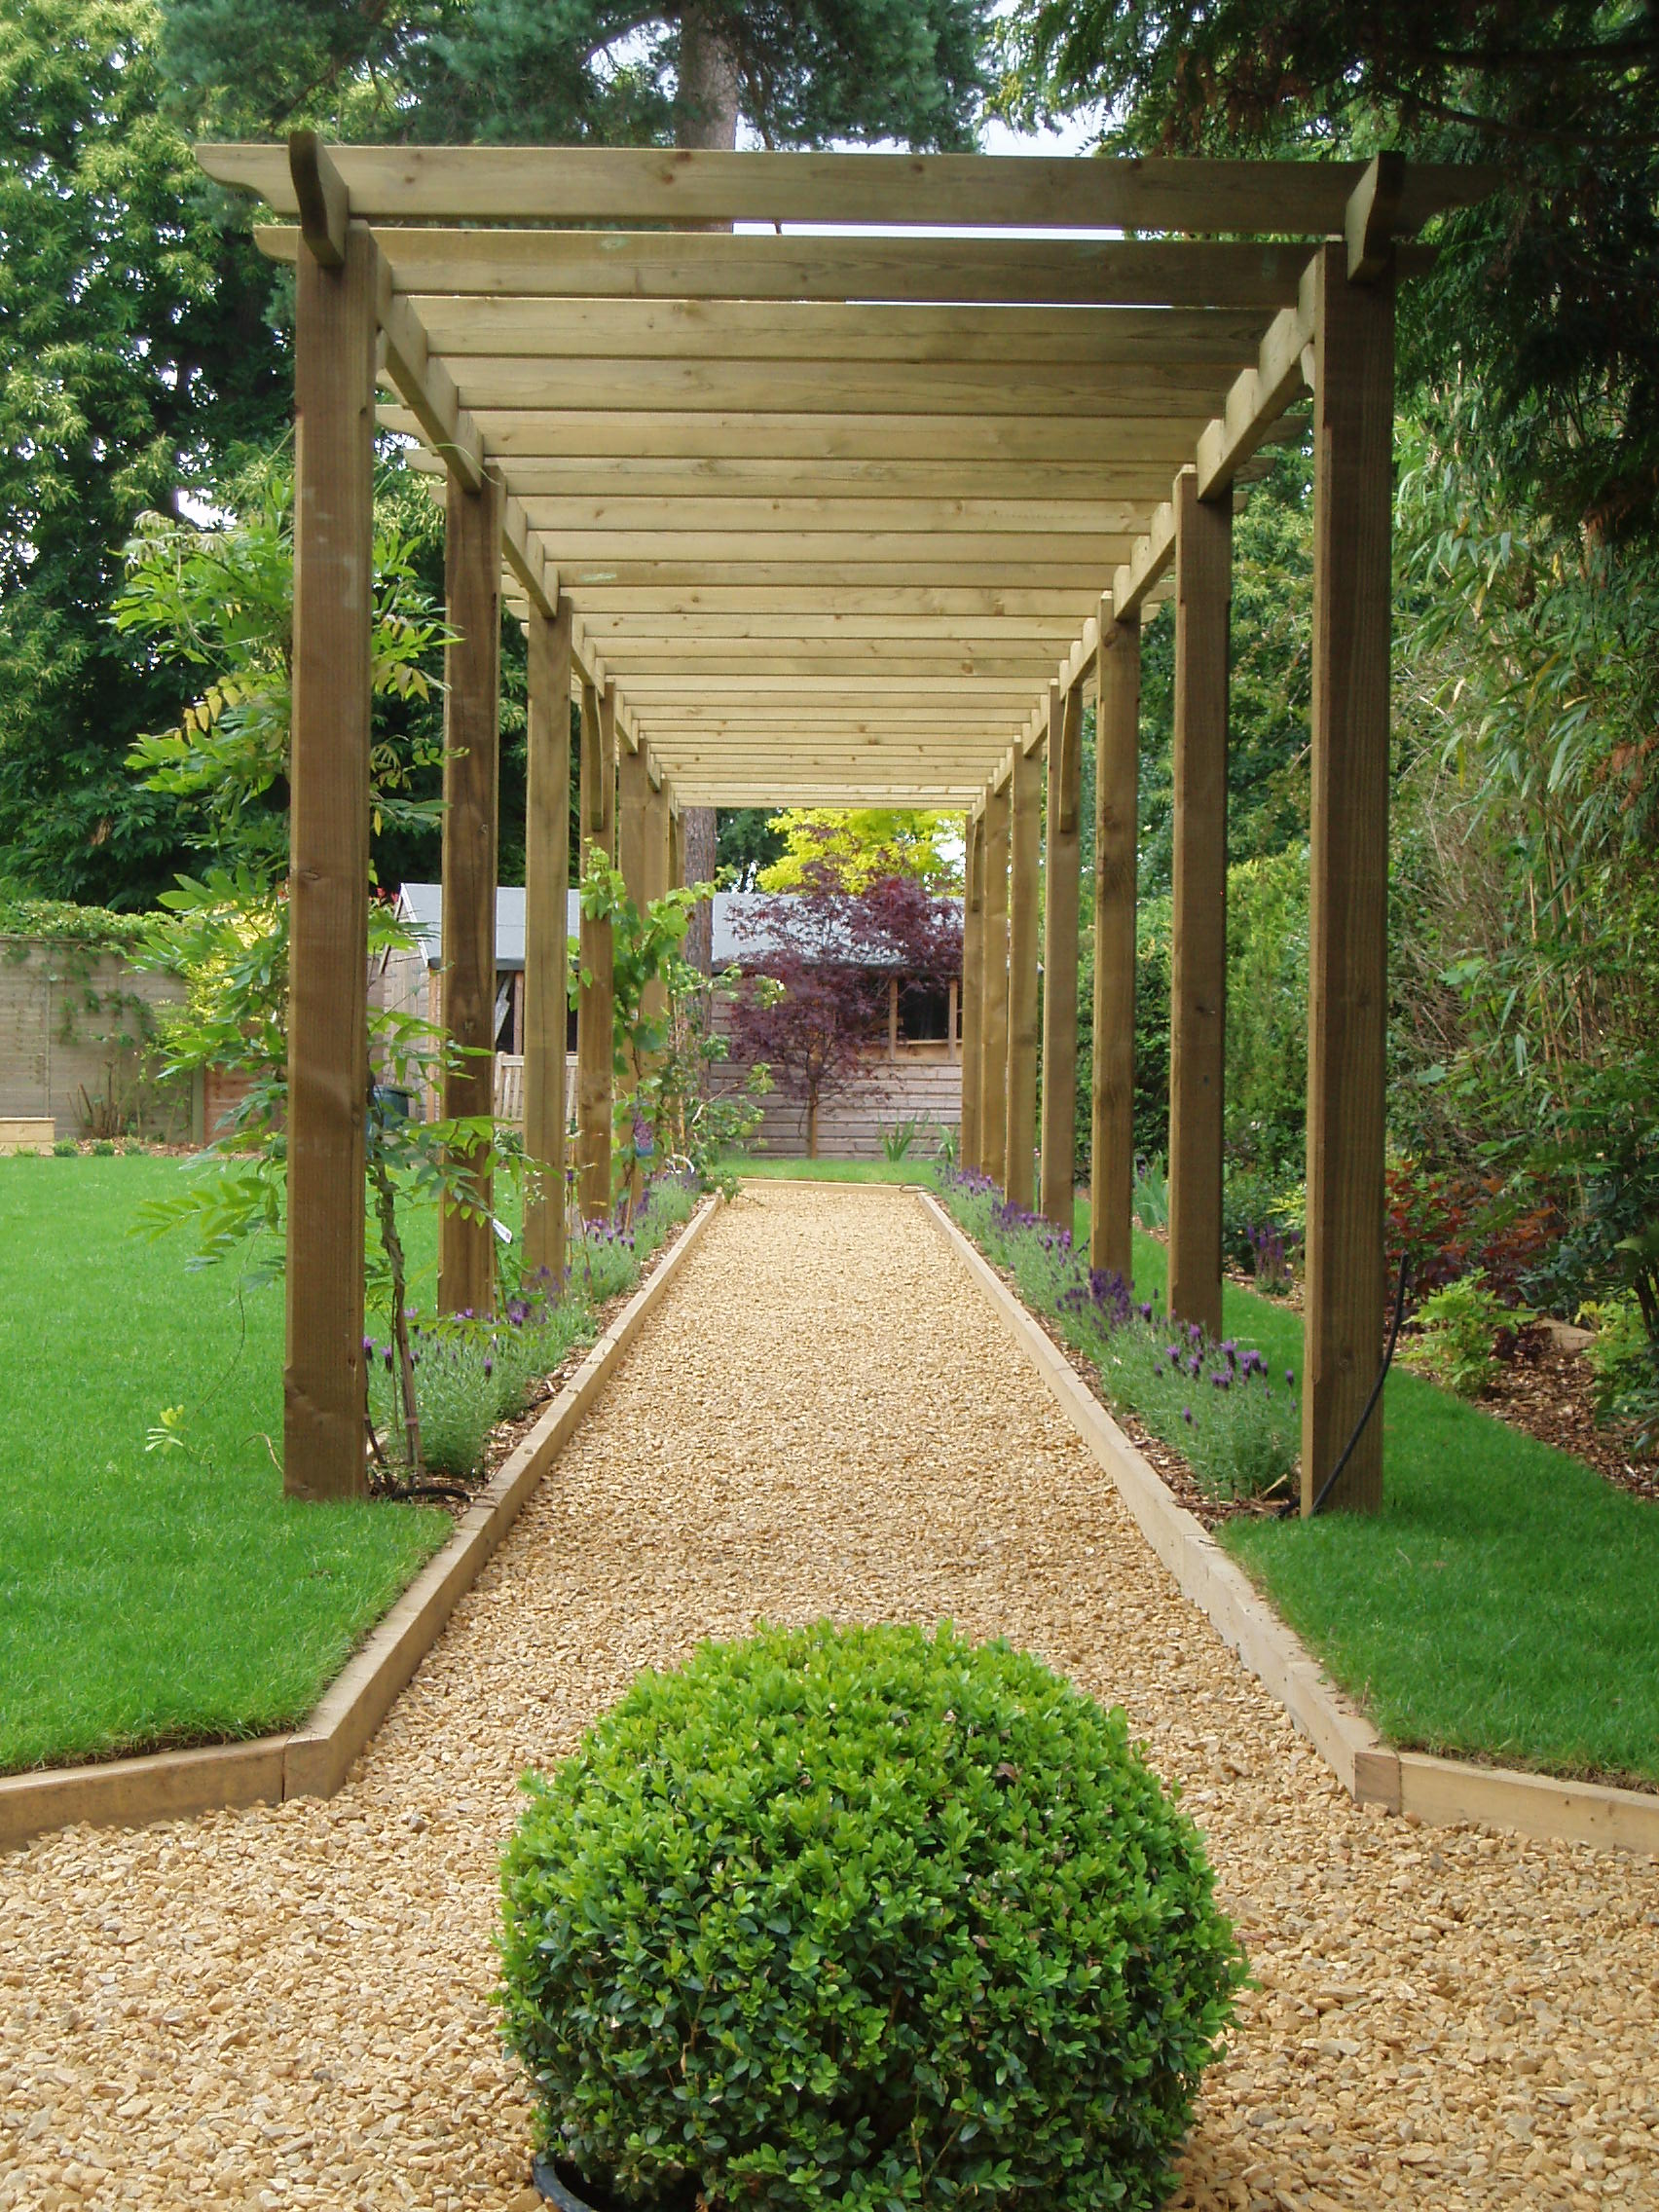 Adl timber structures pergolas garden landscaping for Timber garden arch designs